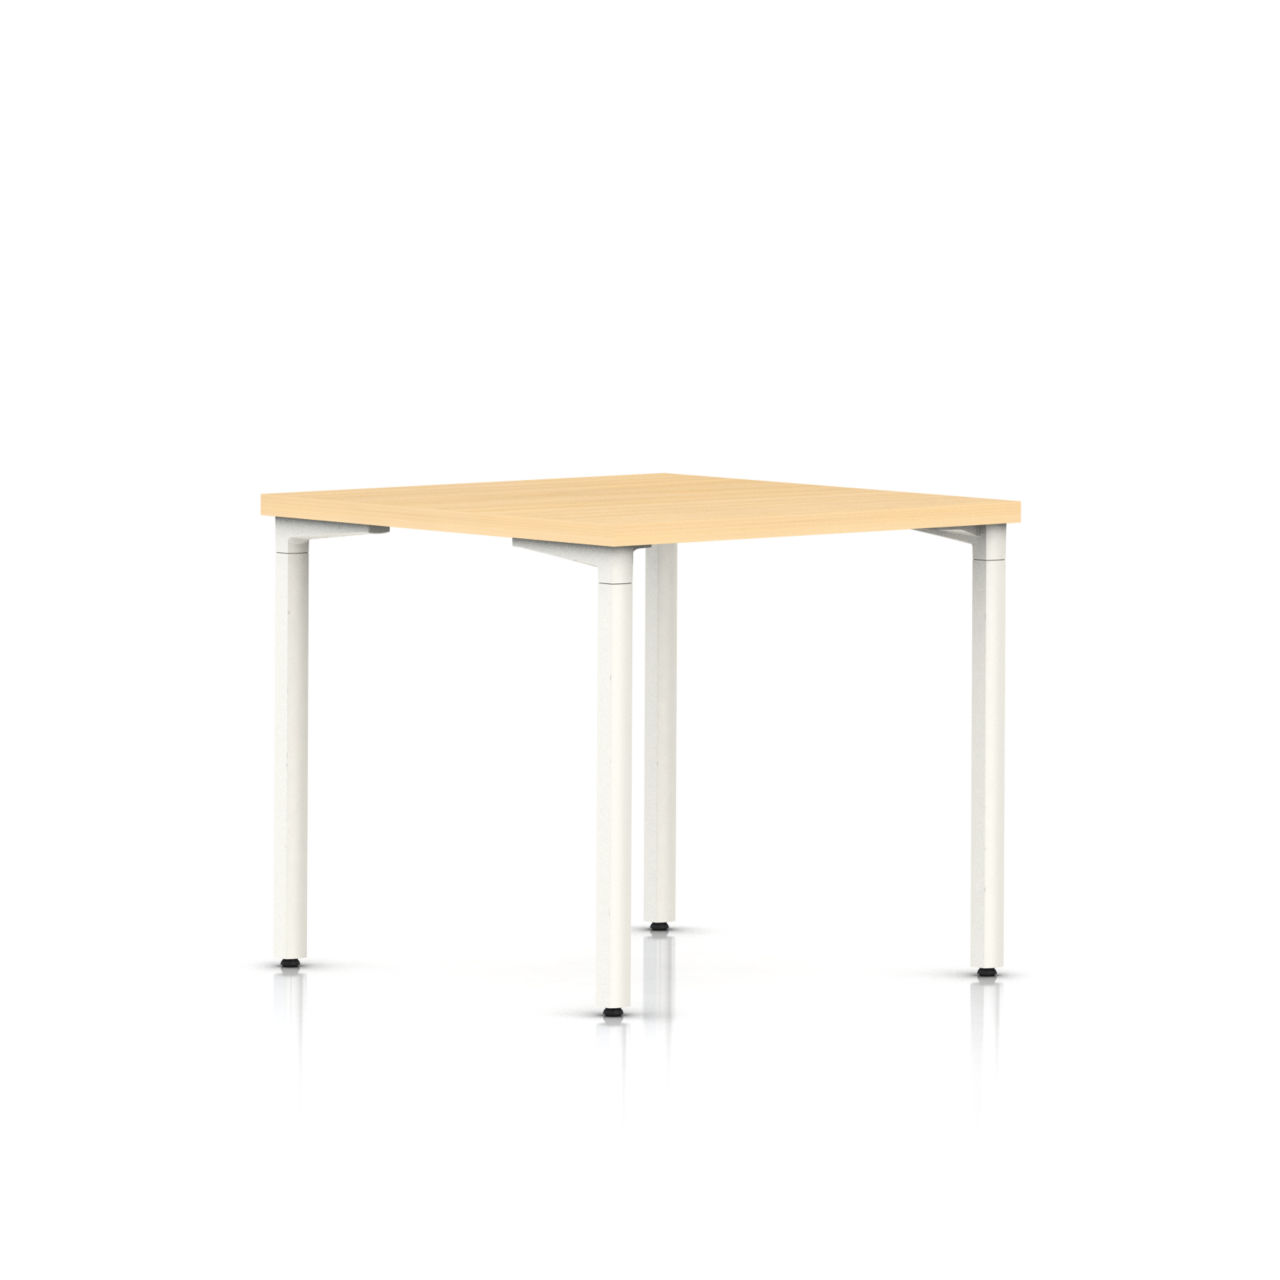 Everywhere Square Table in Natural Maple 30 IN x 30 IN by Herman Miller